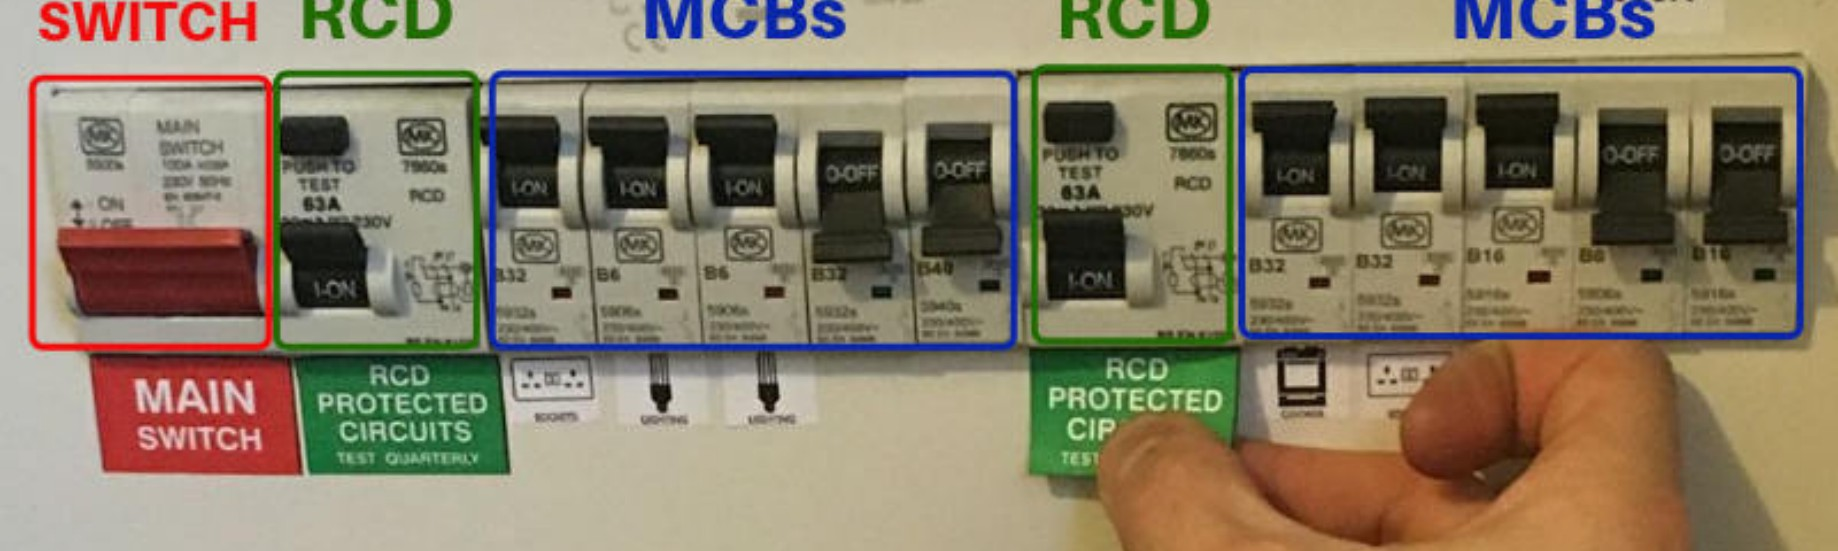 Rcd Fuse Box Reset - Wiring Diagram Local Fuse Box With Rcd on